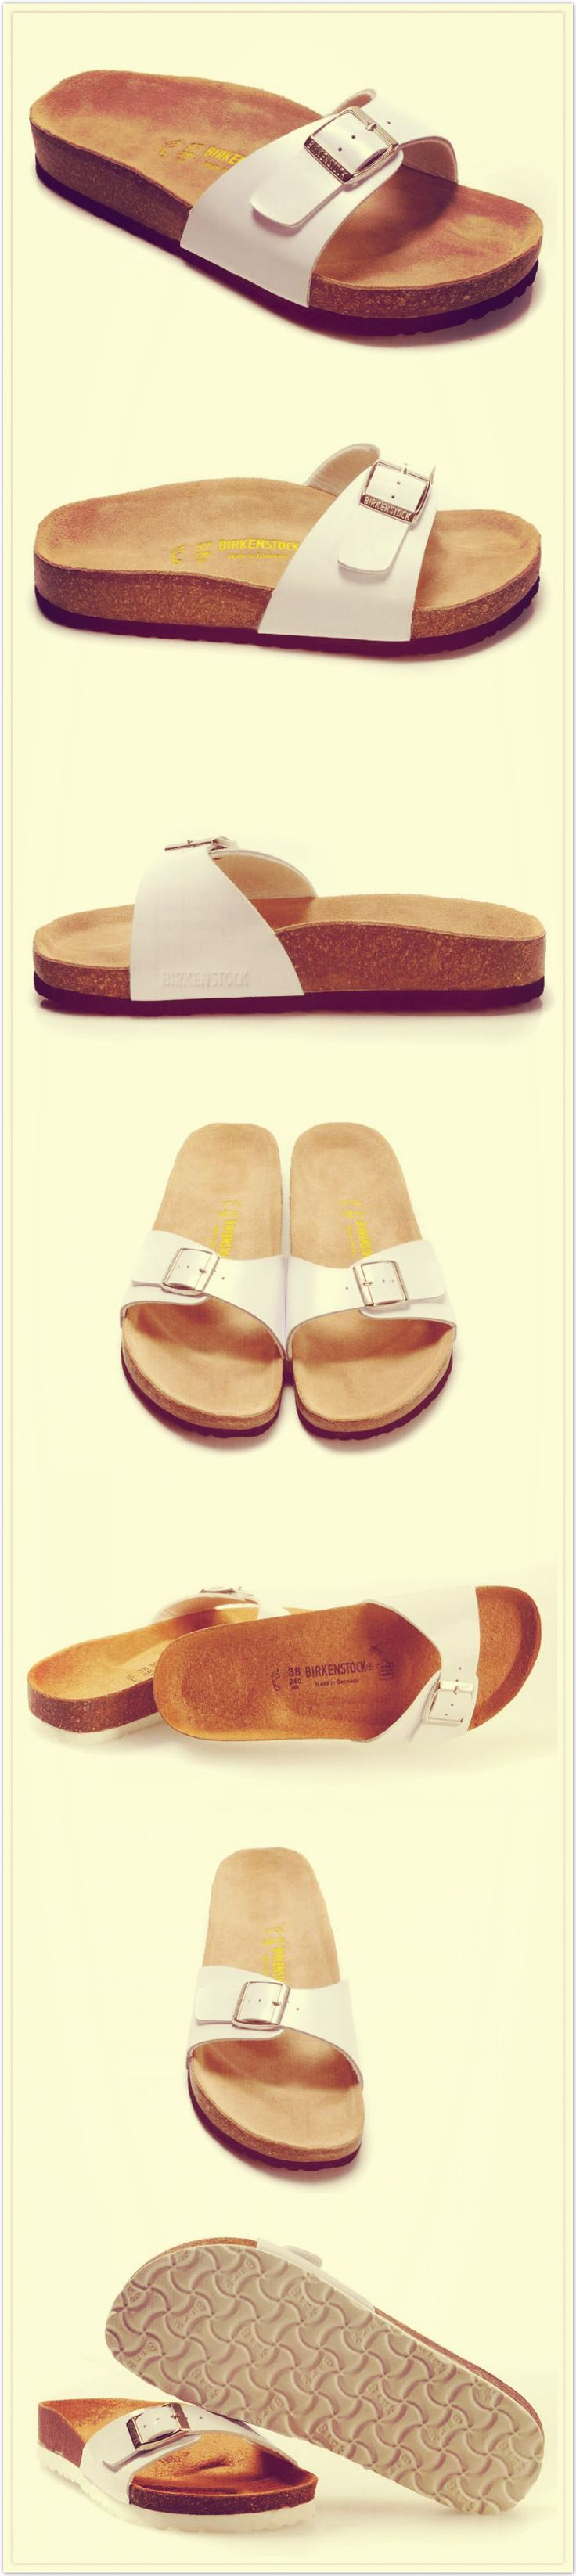 It's pretty cool (: / Womens Birkenstock Madrid Sandals OUTLET...$34!